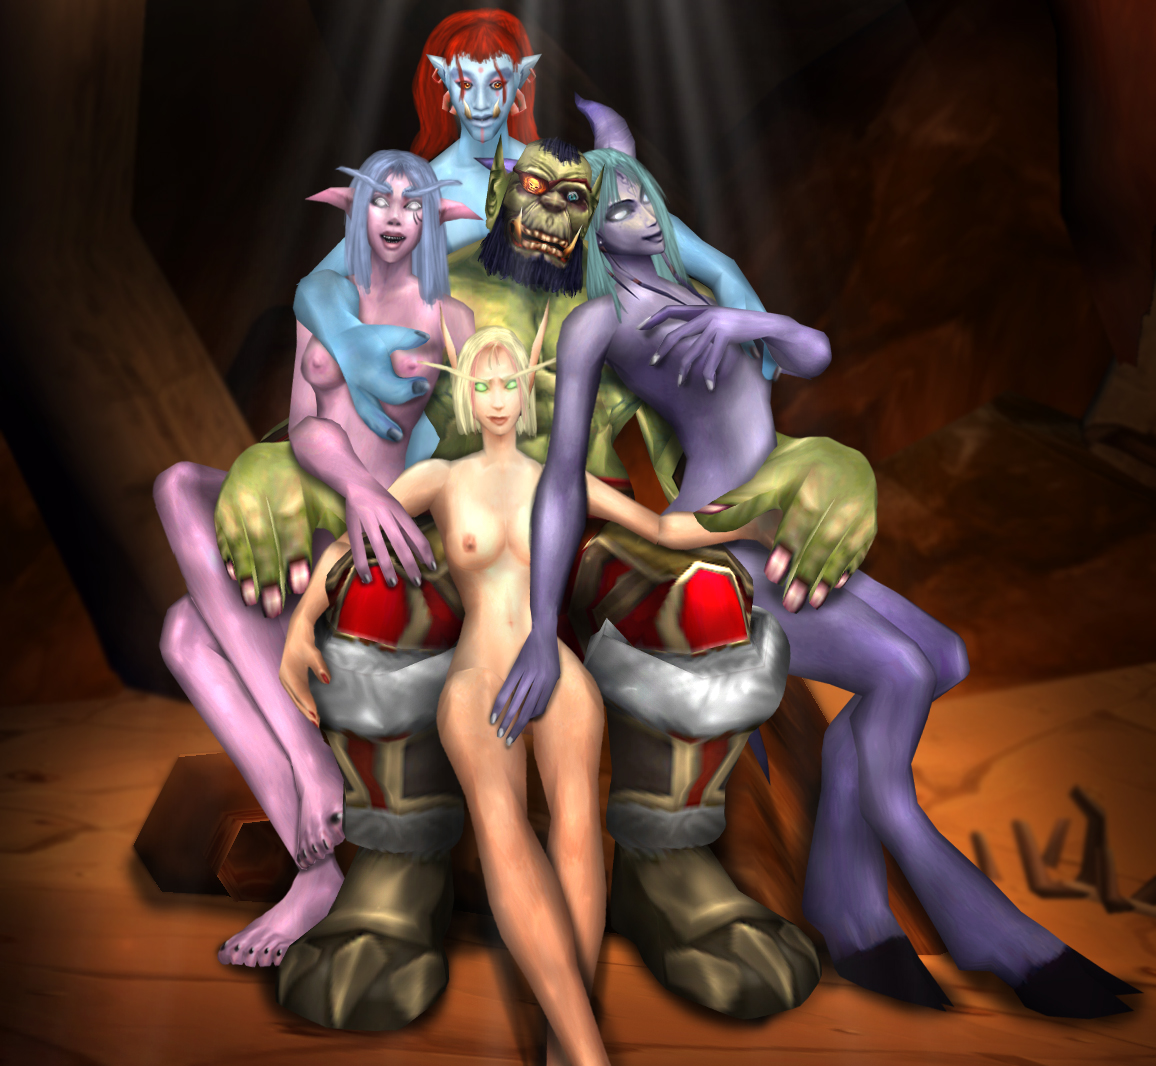 Warcraft porn stories porn picture